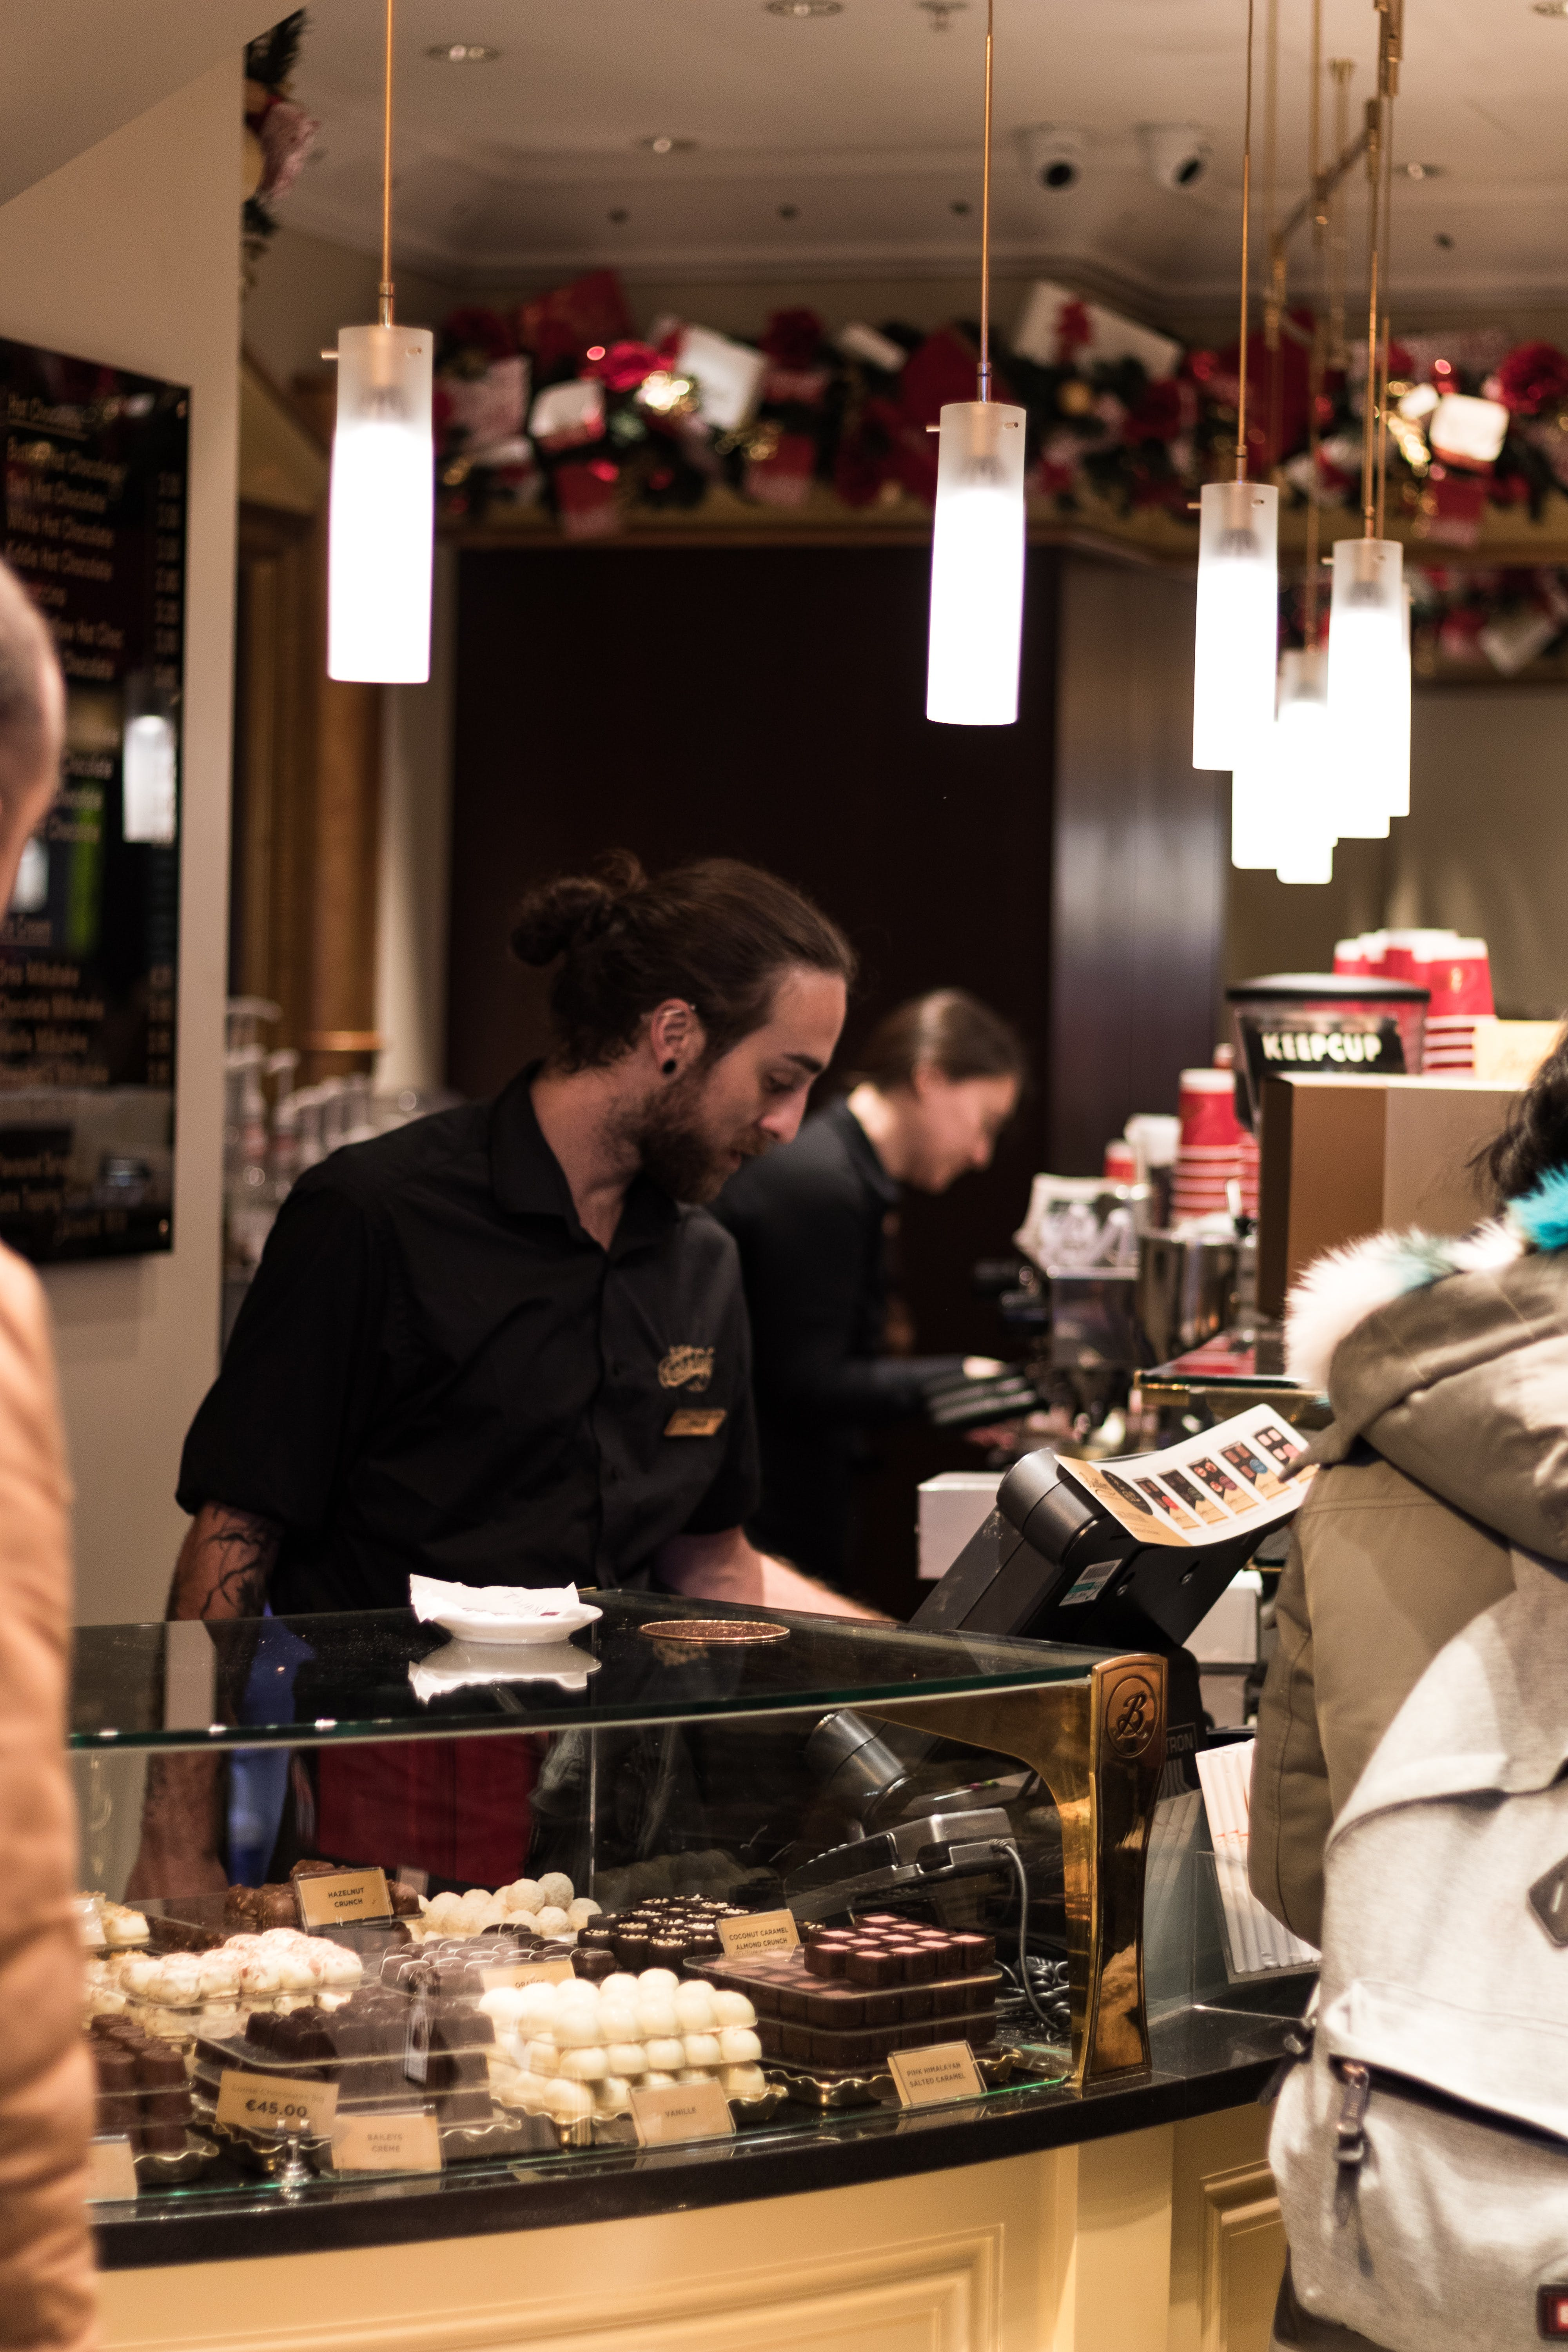 Free stock photo of butlers, café, chocolate